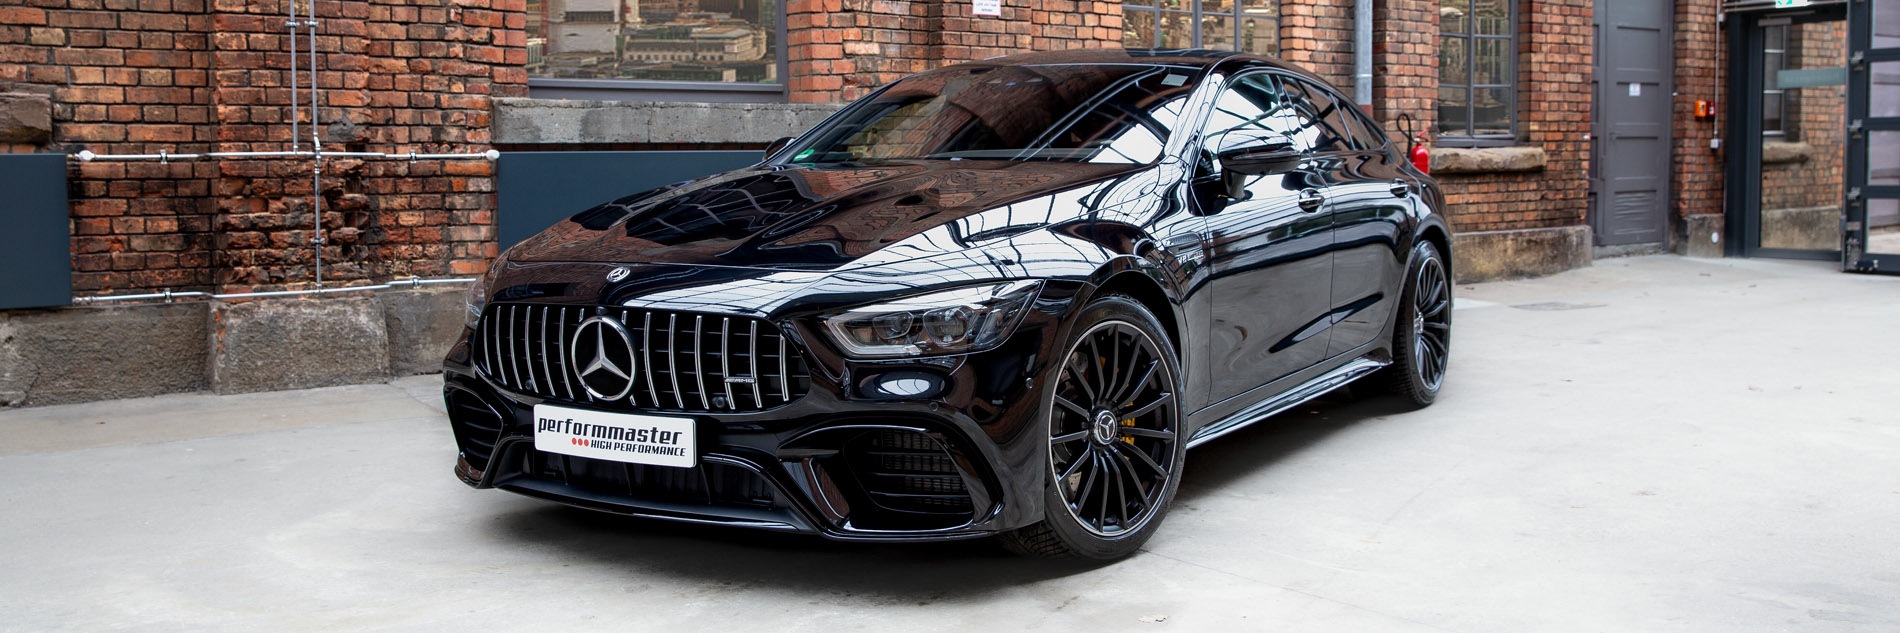 mercedes amg gt 63 and 63 s performmaster exclusive. Black Bedroom Furniture Sets. Home Design Ideas